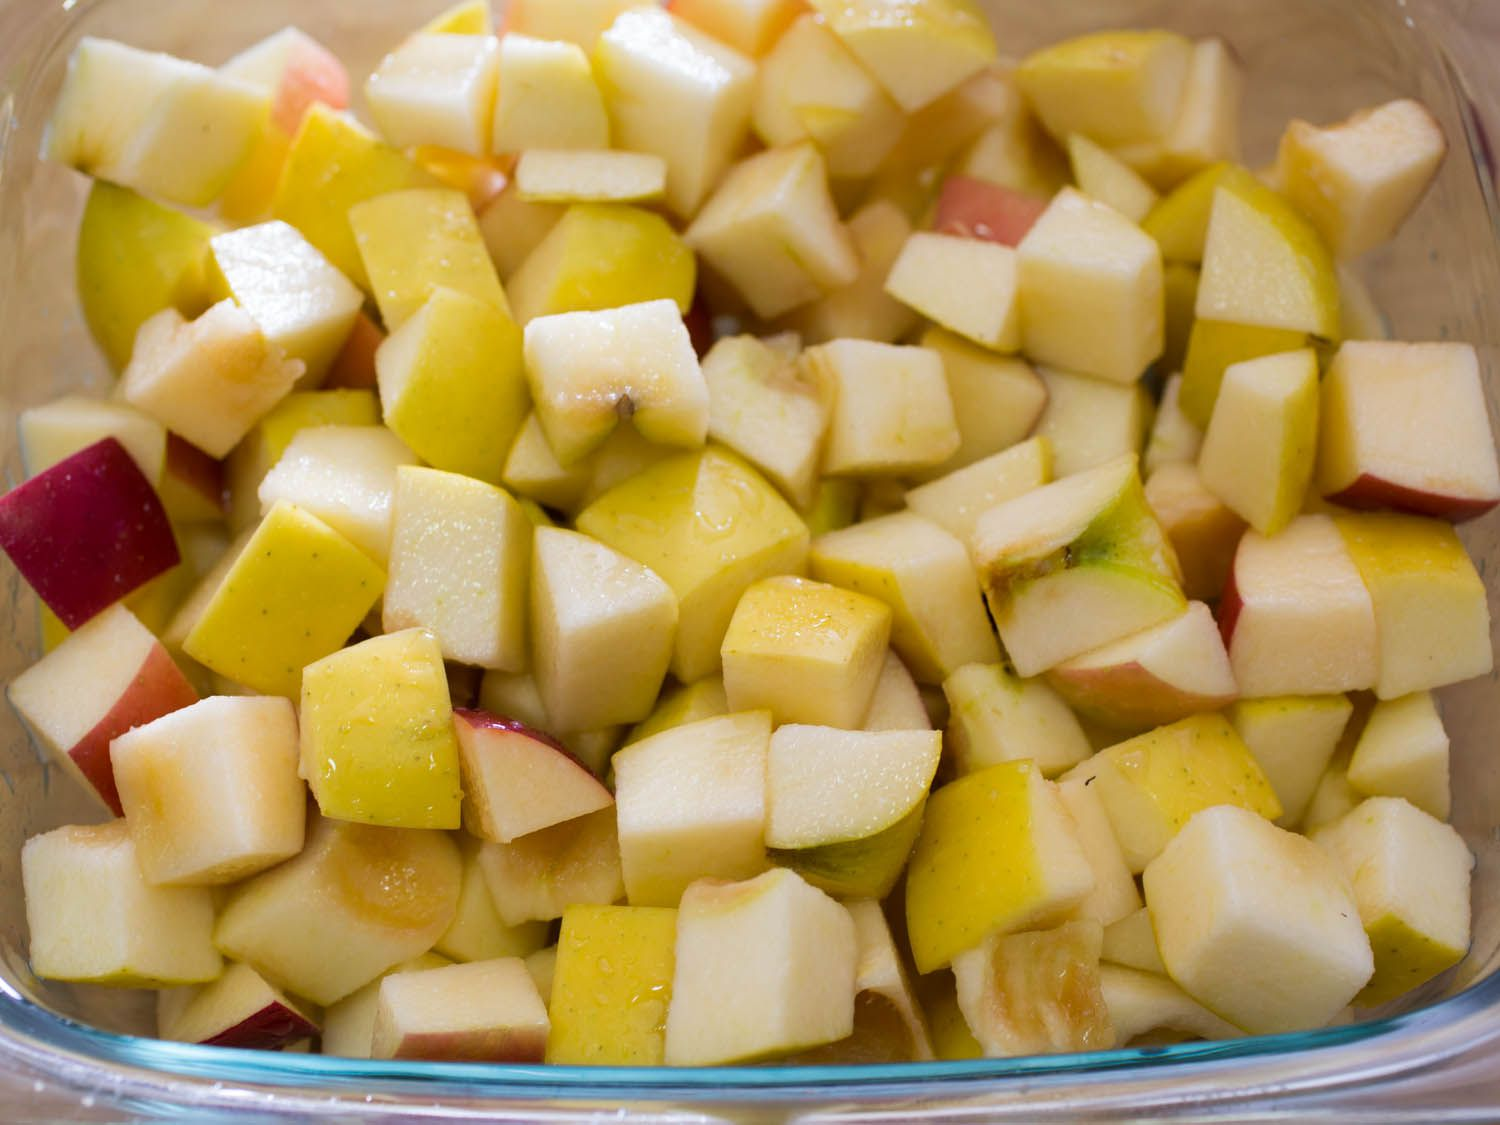 Chopped red and yellow apples in a glass baking dish